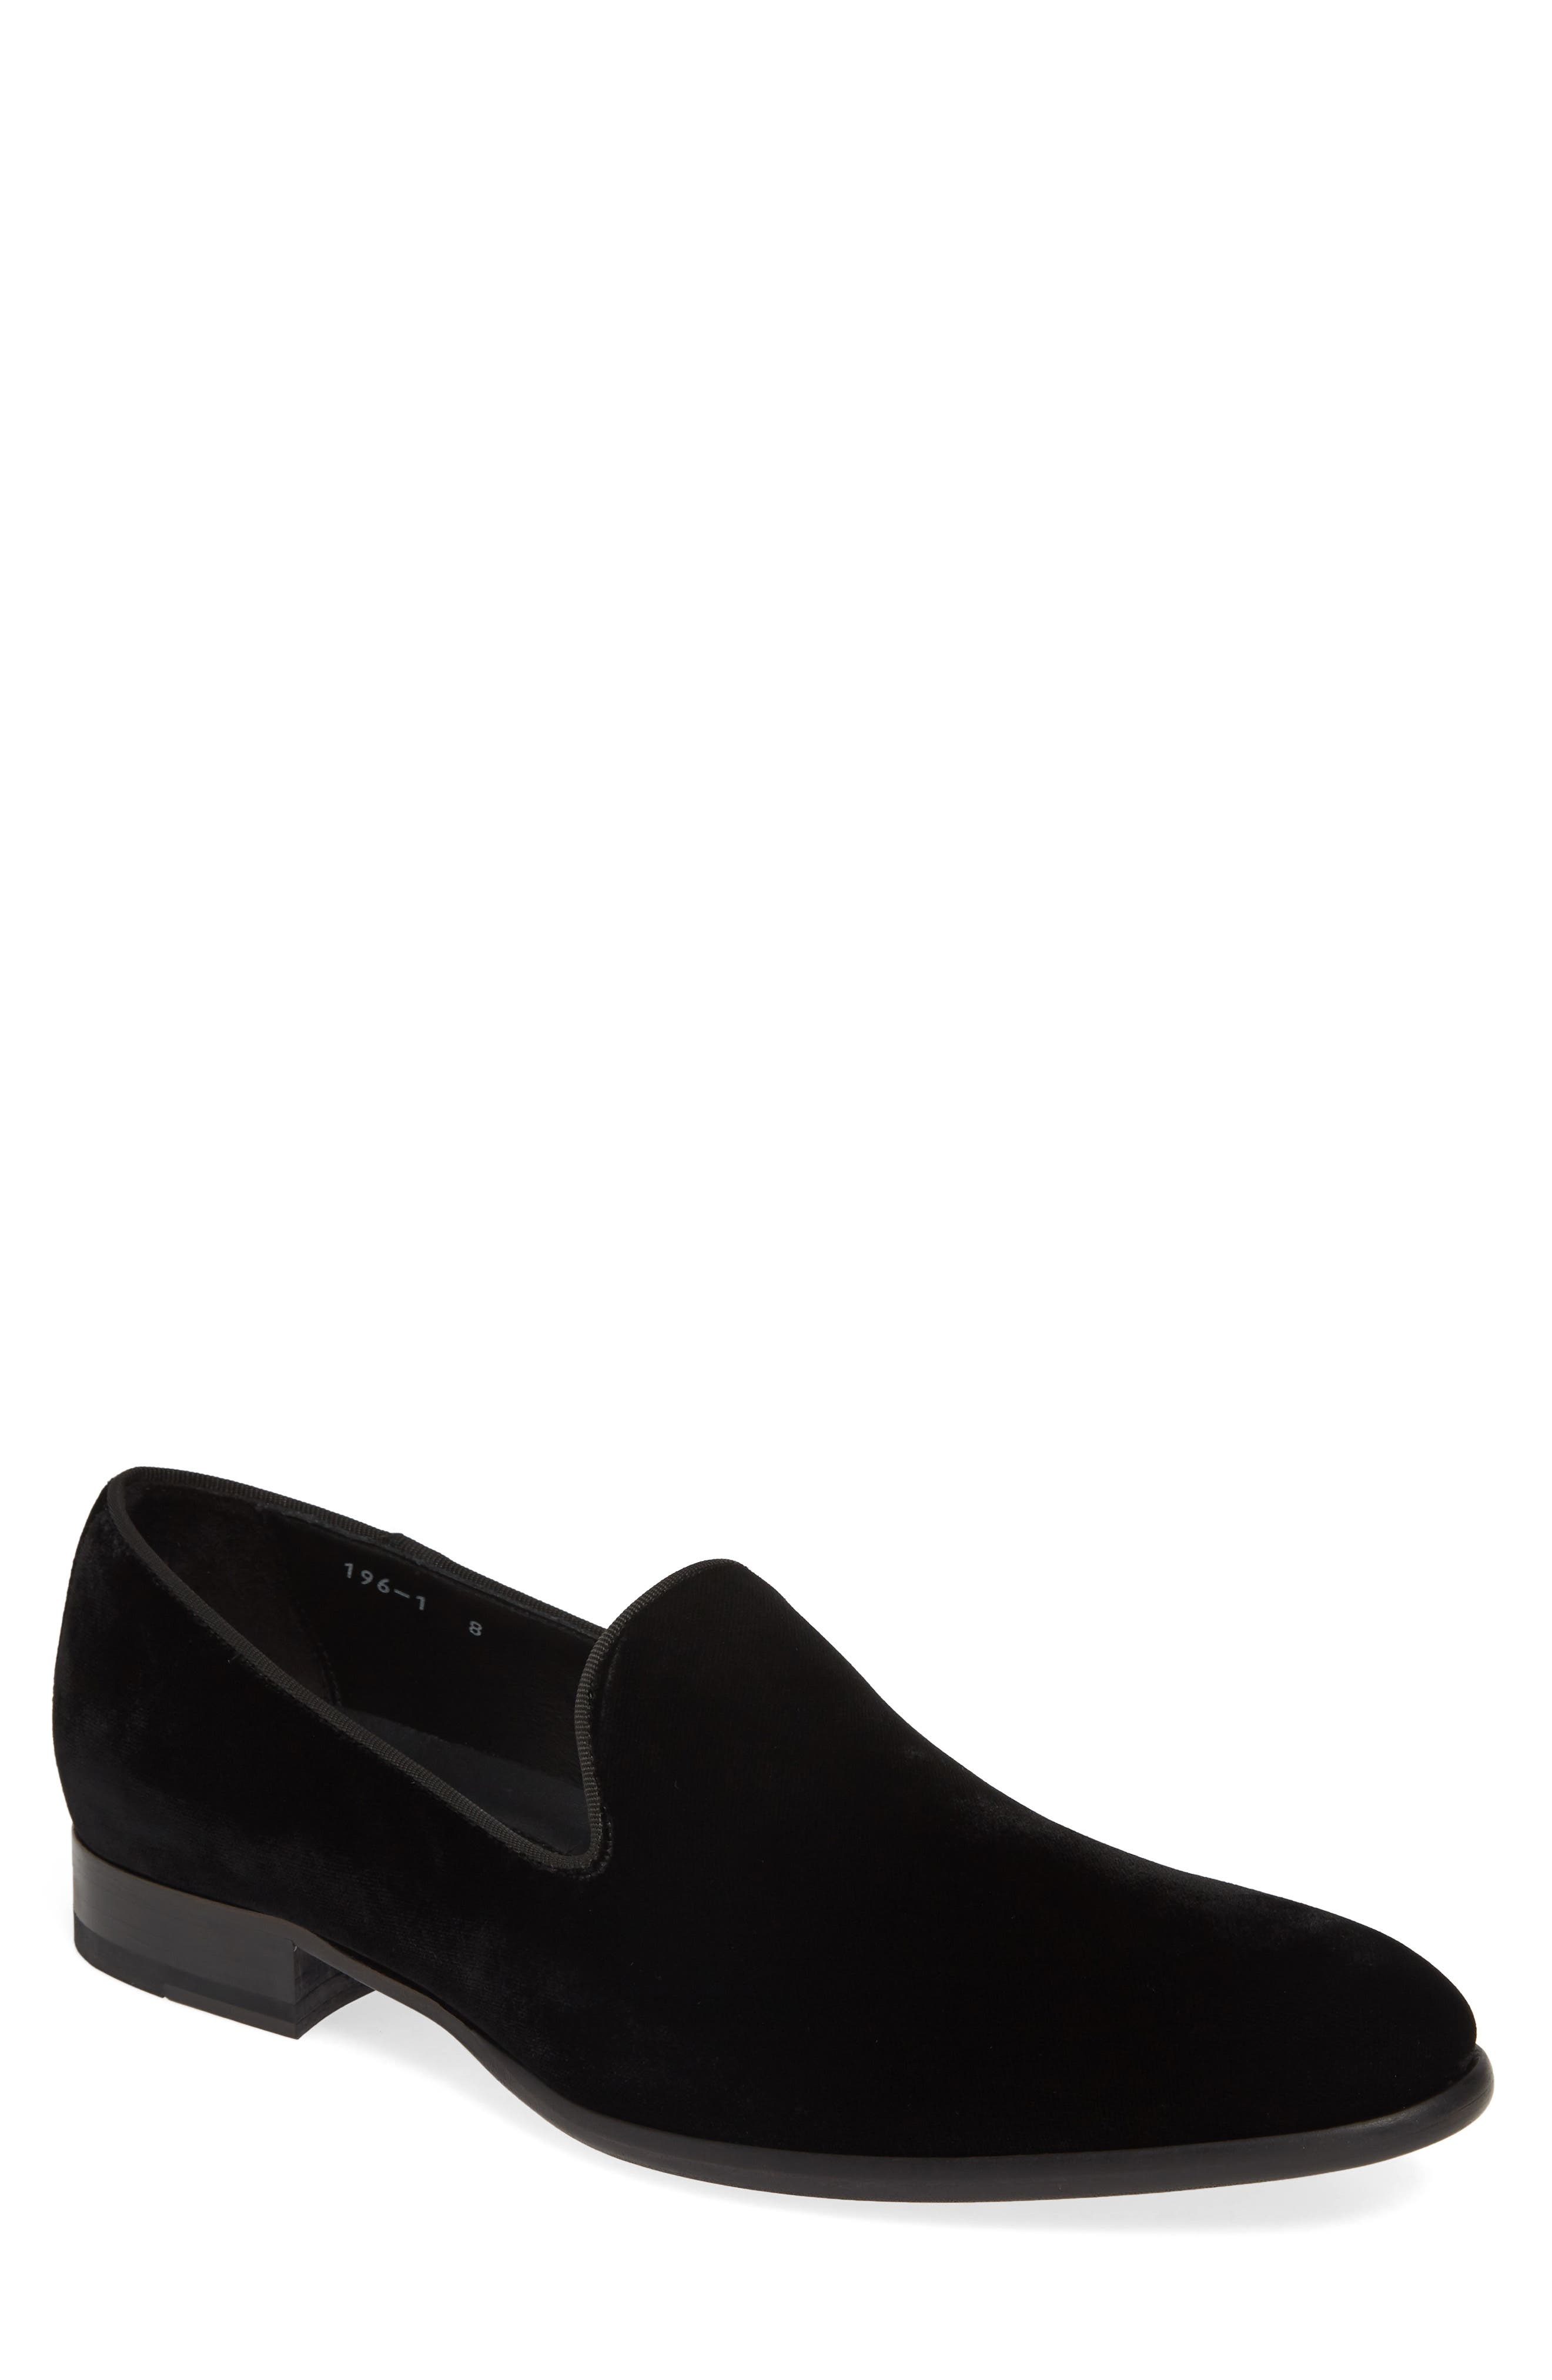 To Boot New York Formal Loafer, Black